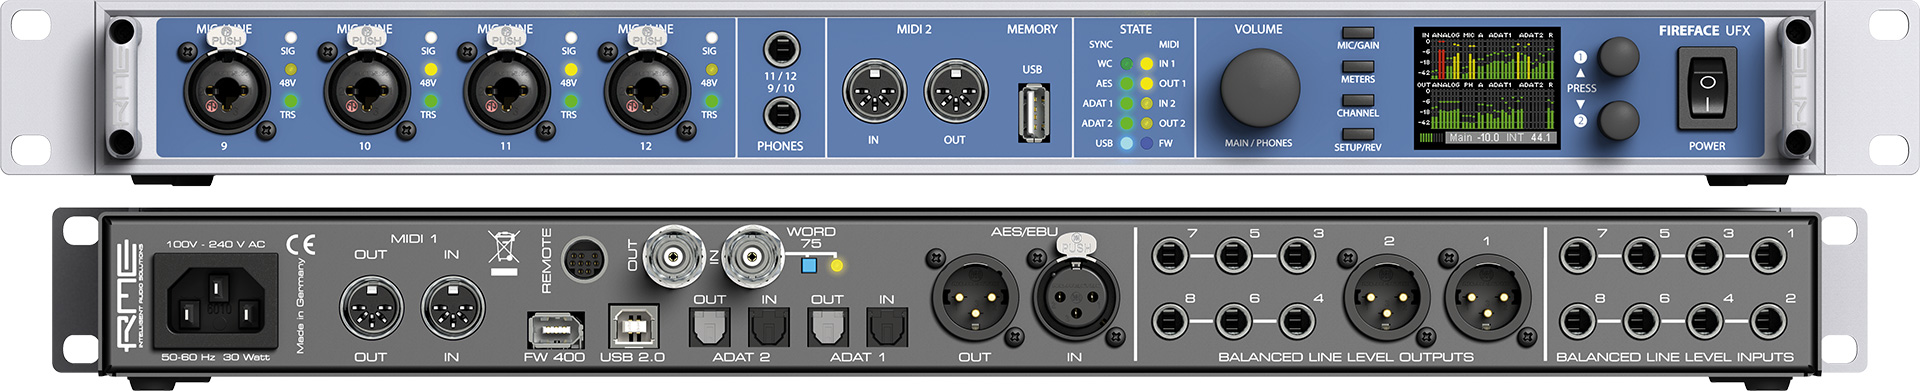 how to use analog inputs on rme fireface